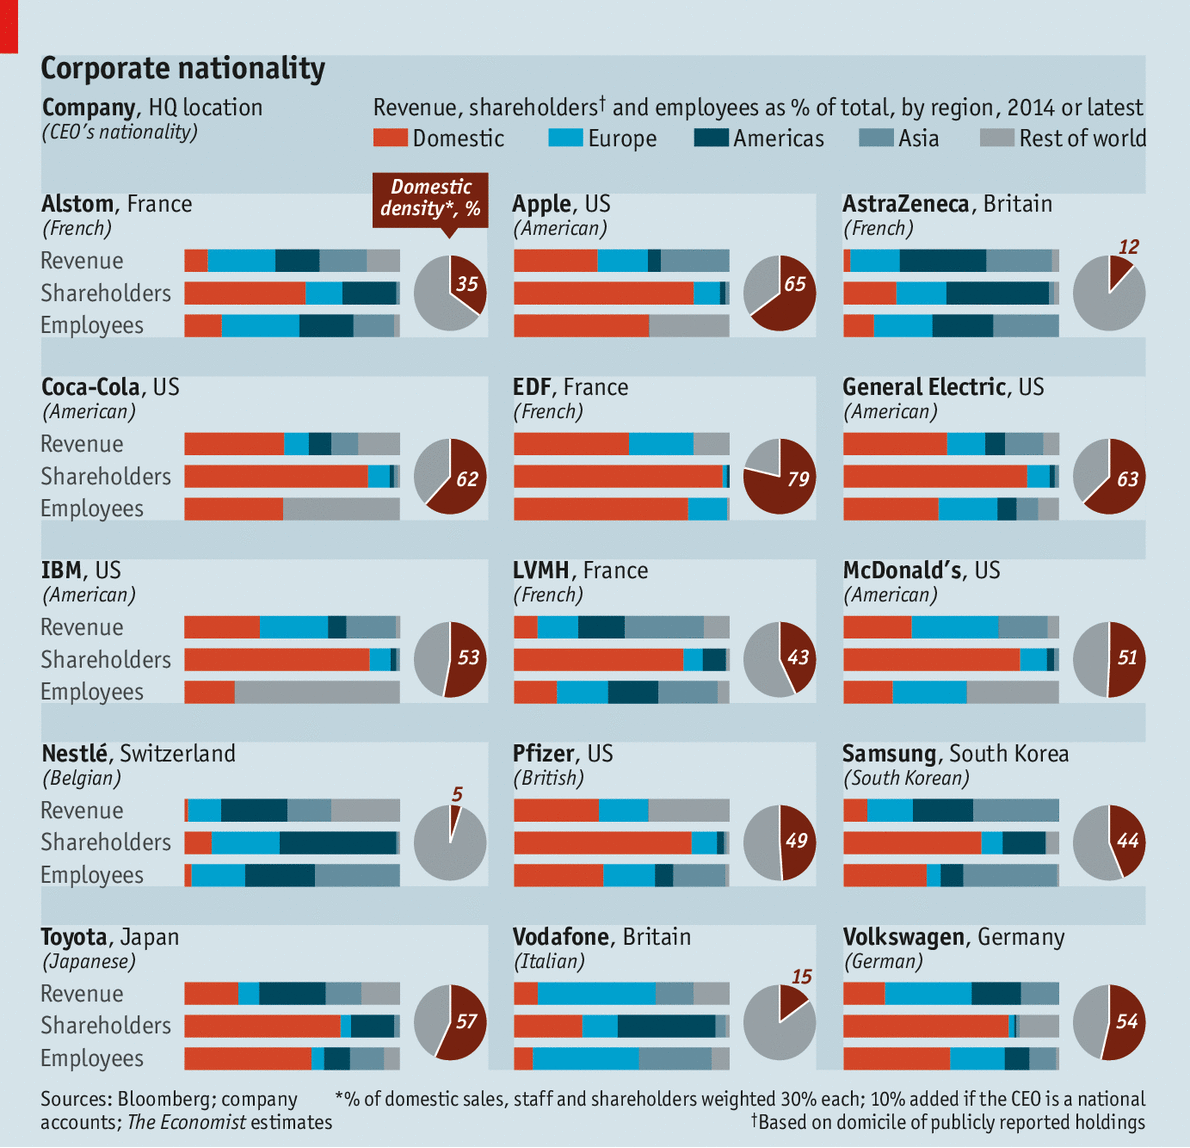 Corporate nationality